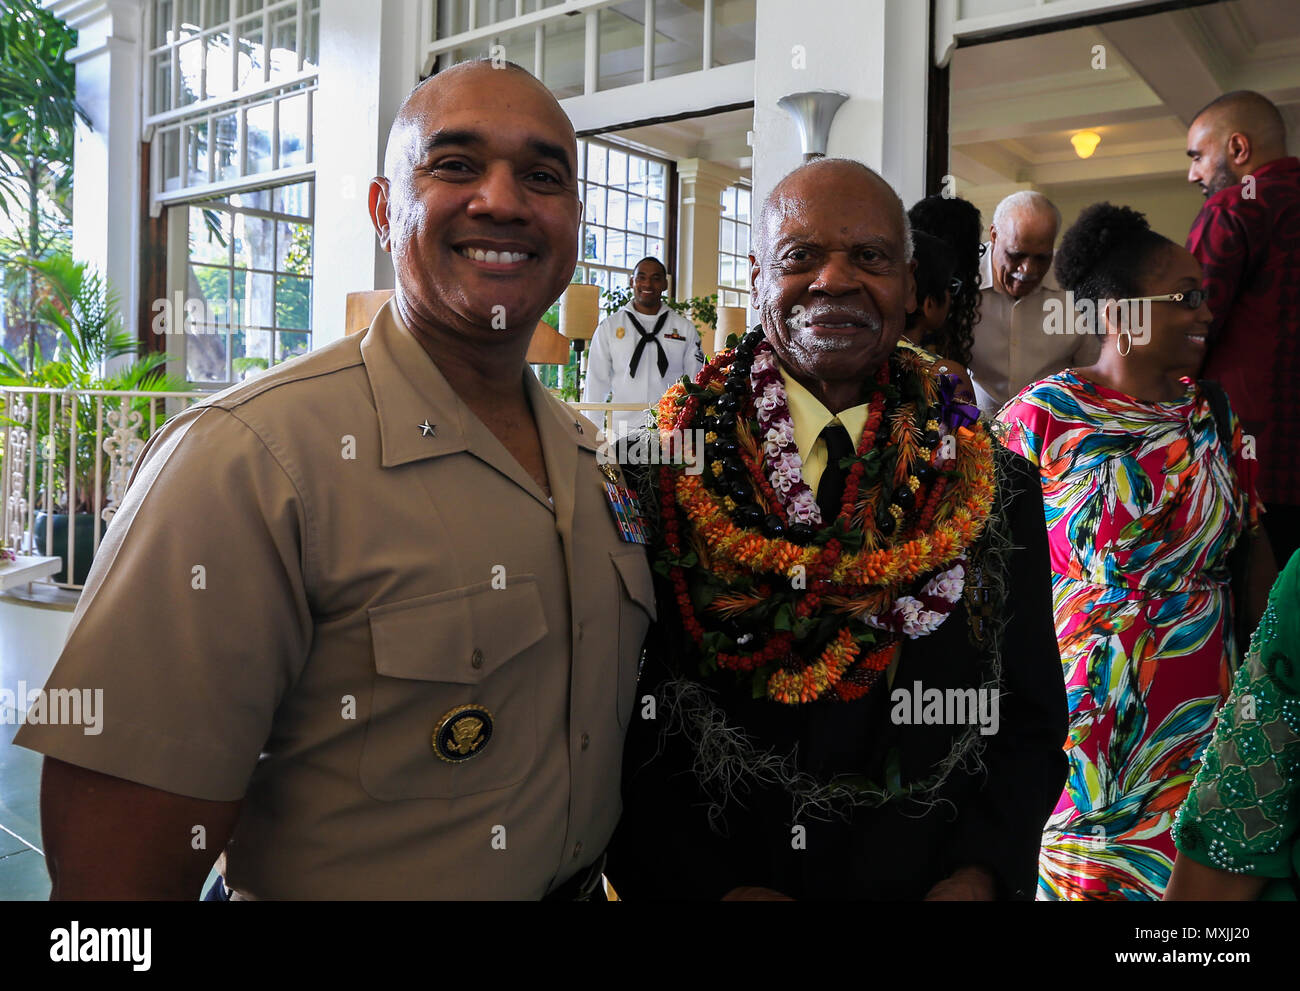 U.S. Marine Brig. Gen. Brian W. Cavanaugh, deputy commander of U.S. Marine Corps Forces, Pacific, and Dr. Ernest James Harris, Jr. stand together after a Congressional Gold Medal presentation in Honolulu Nov. 12, 2016. Harris was awarded his Congressional Gold Medal for his service as a Montford Point Marine. (U.S. Marine Corps photo by Cpl. Wesley Timm) - Stock Image